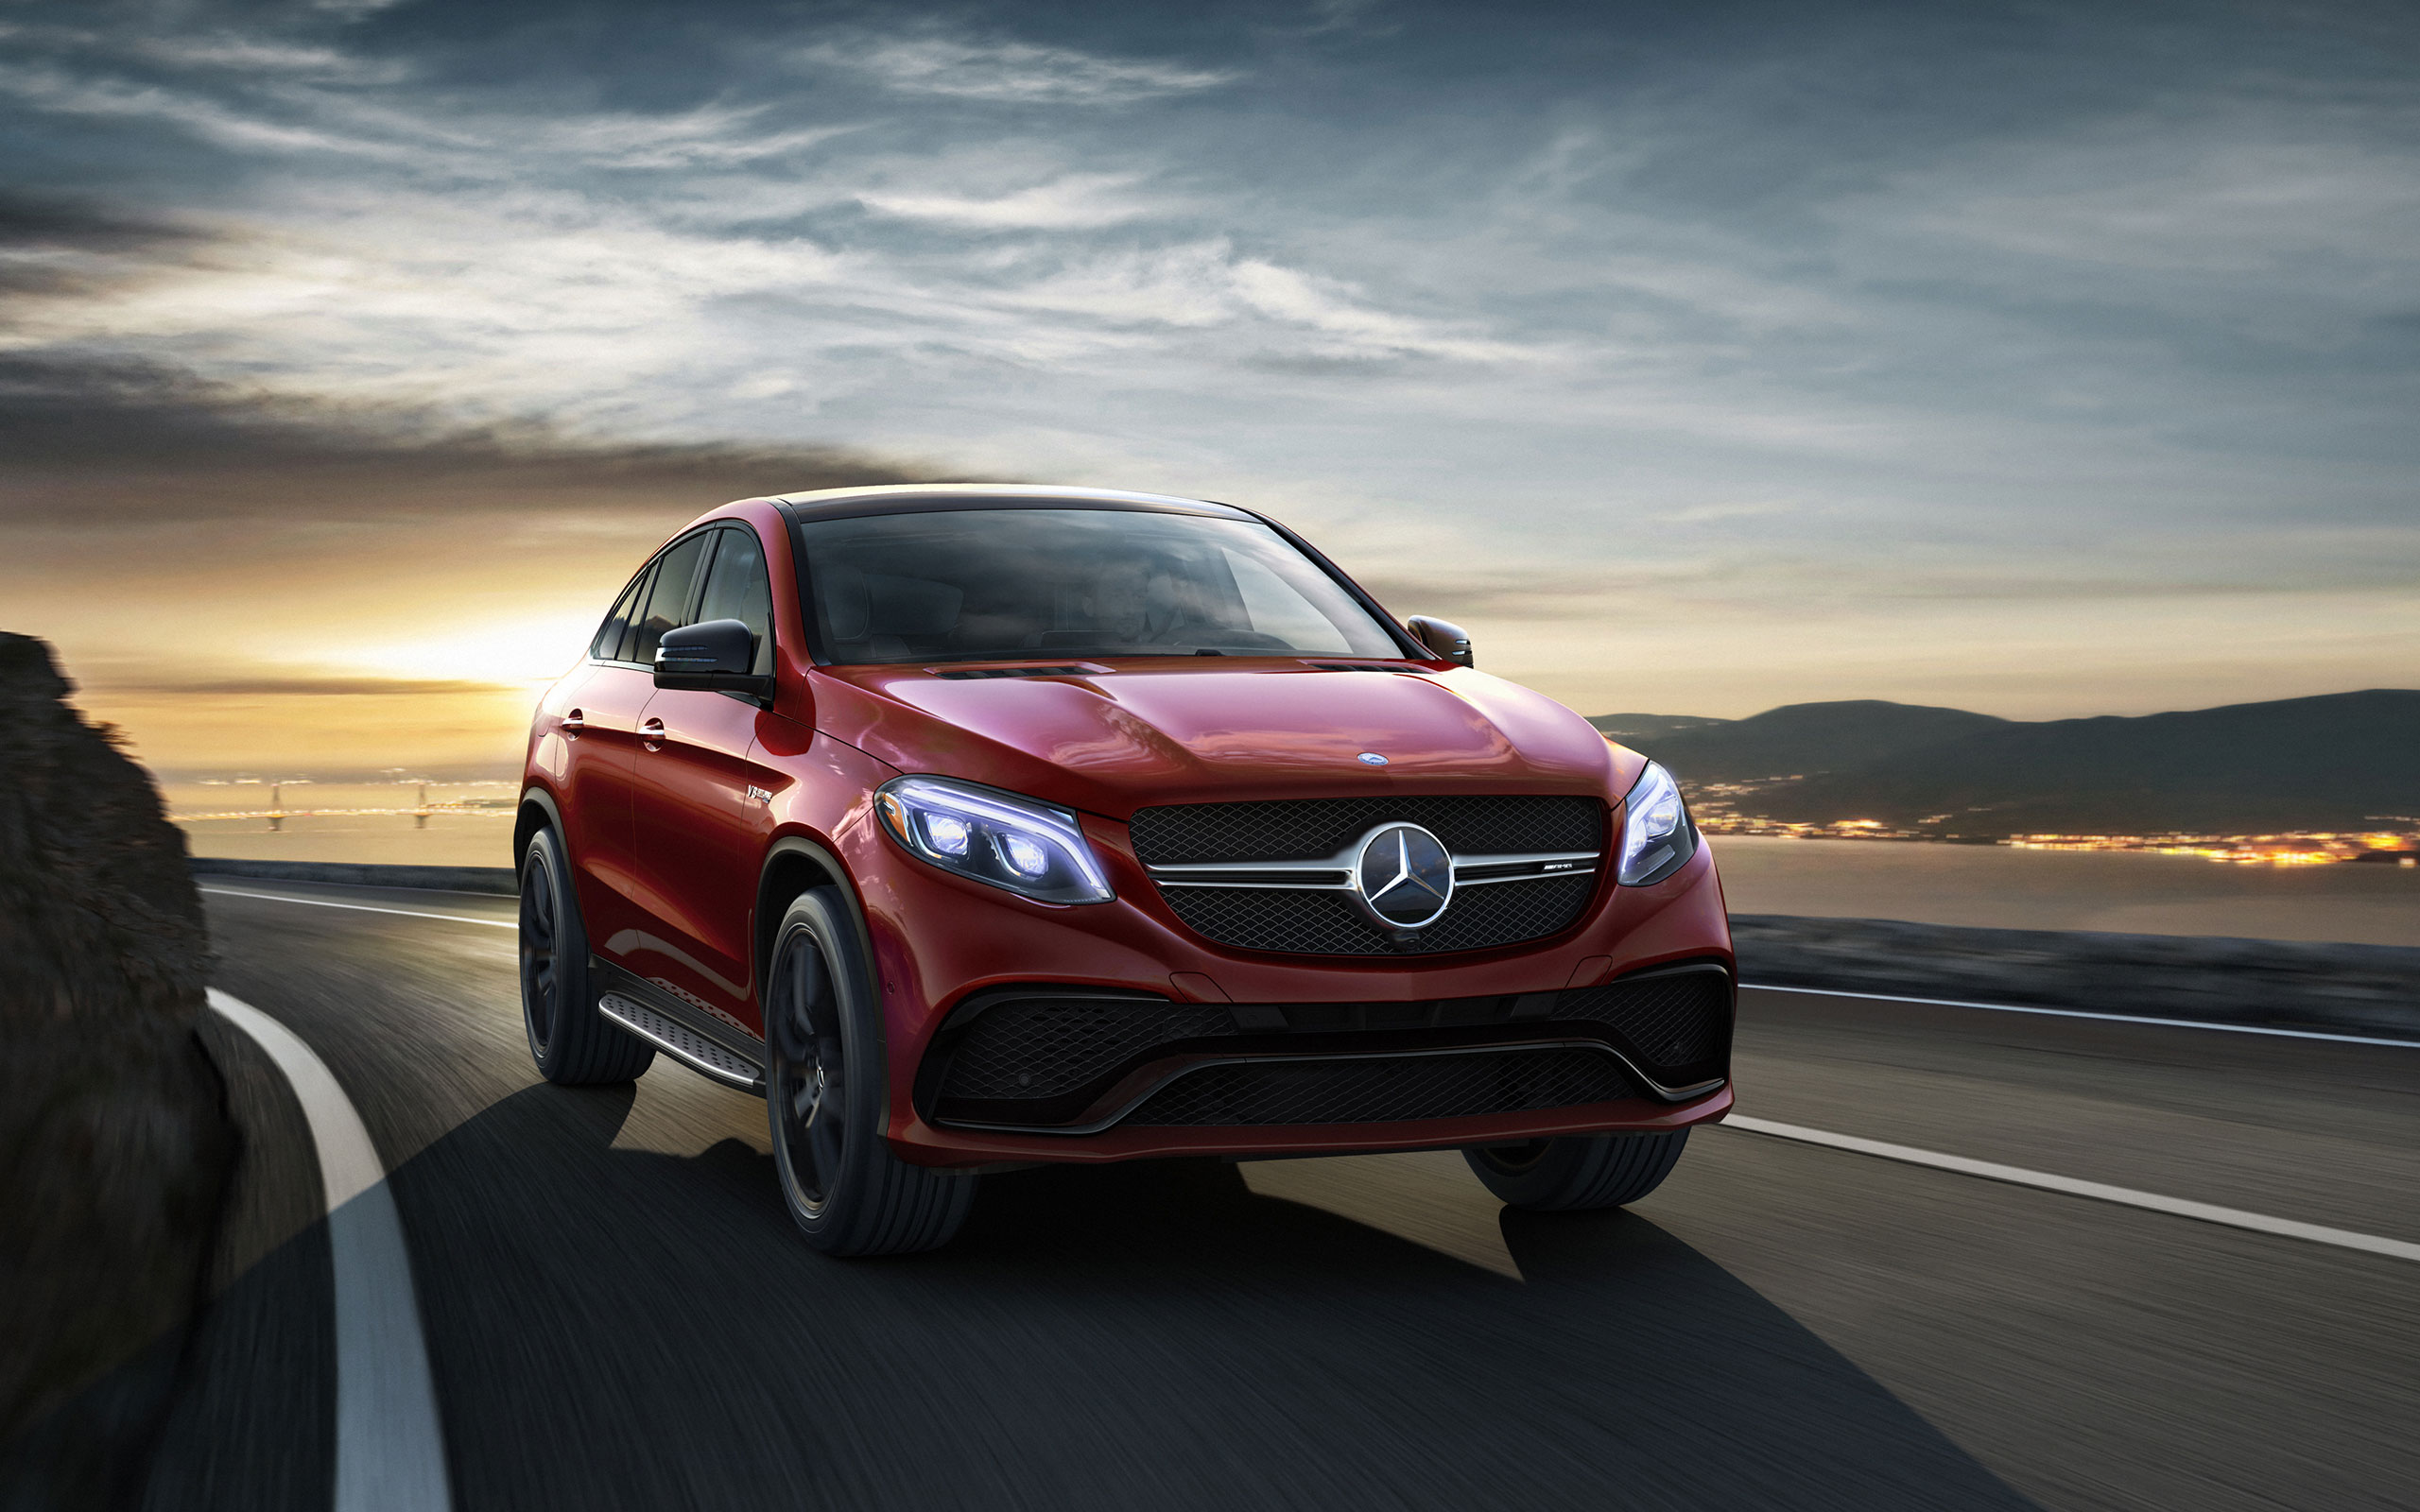 mercedes benz gle coupe mercedes benz of memphis. Cars Review. Best American Auto & Cars Review